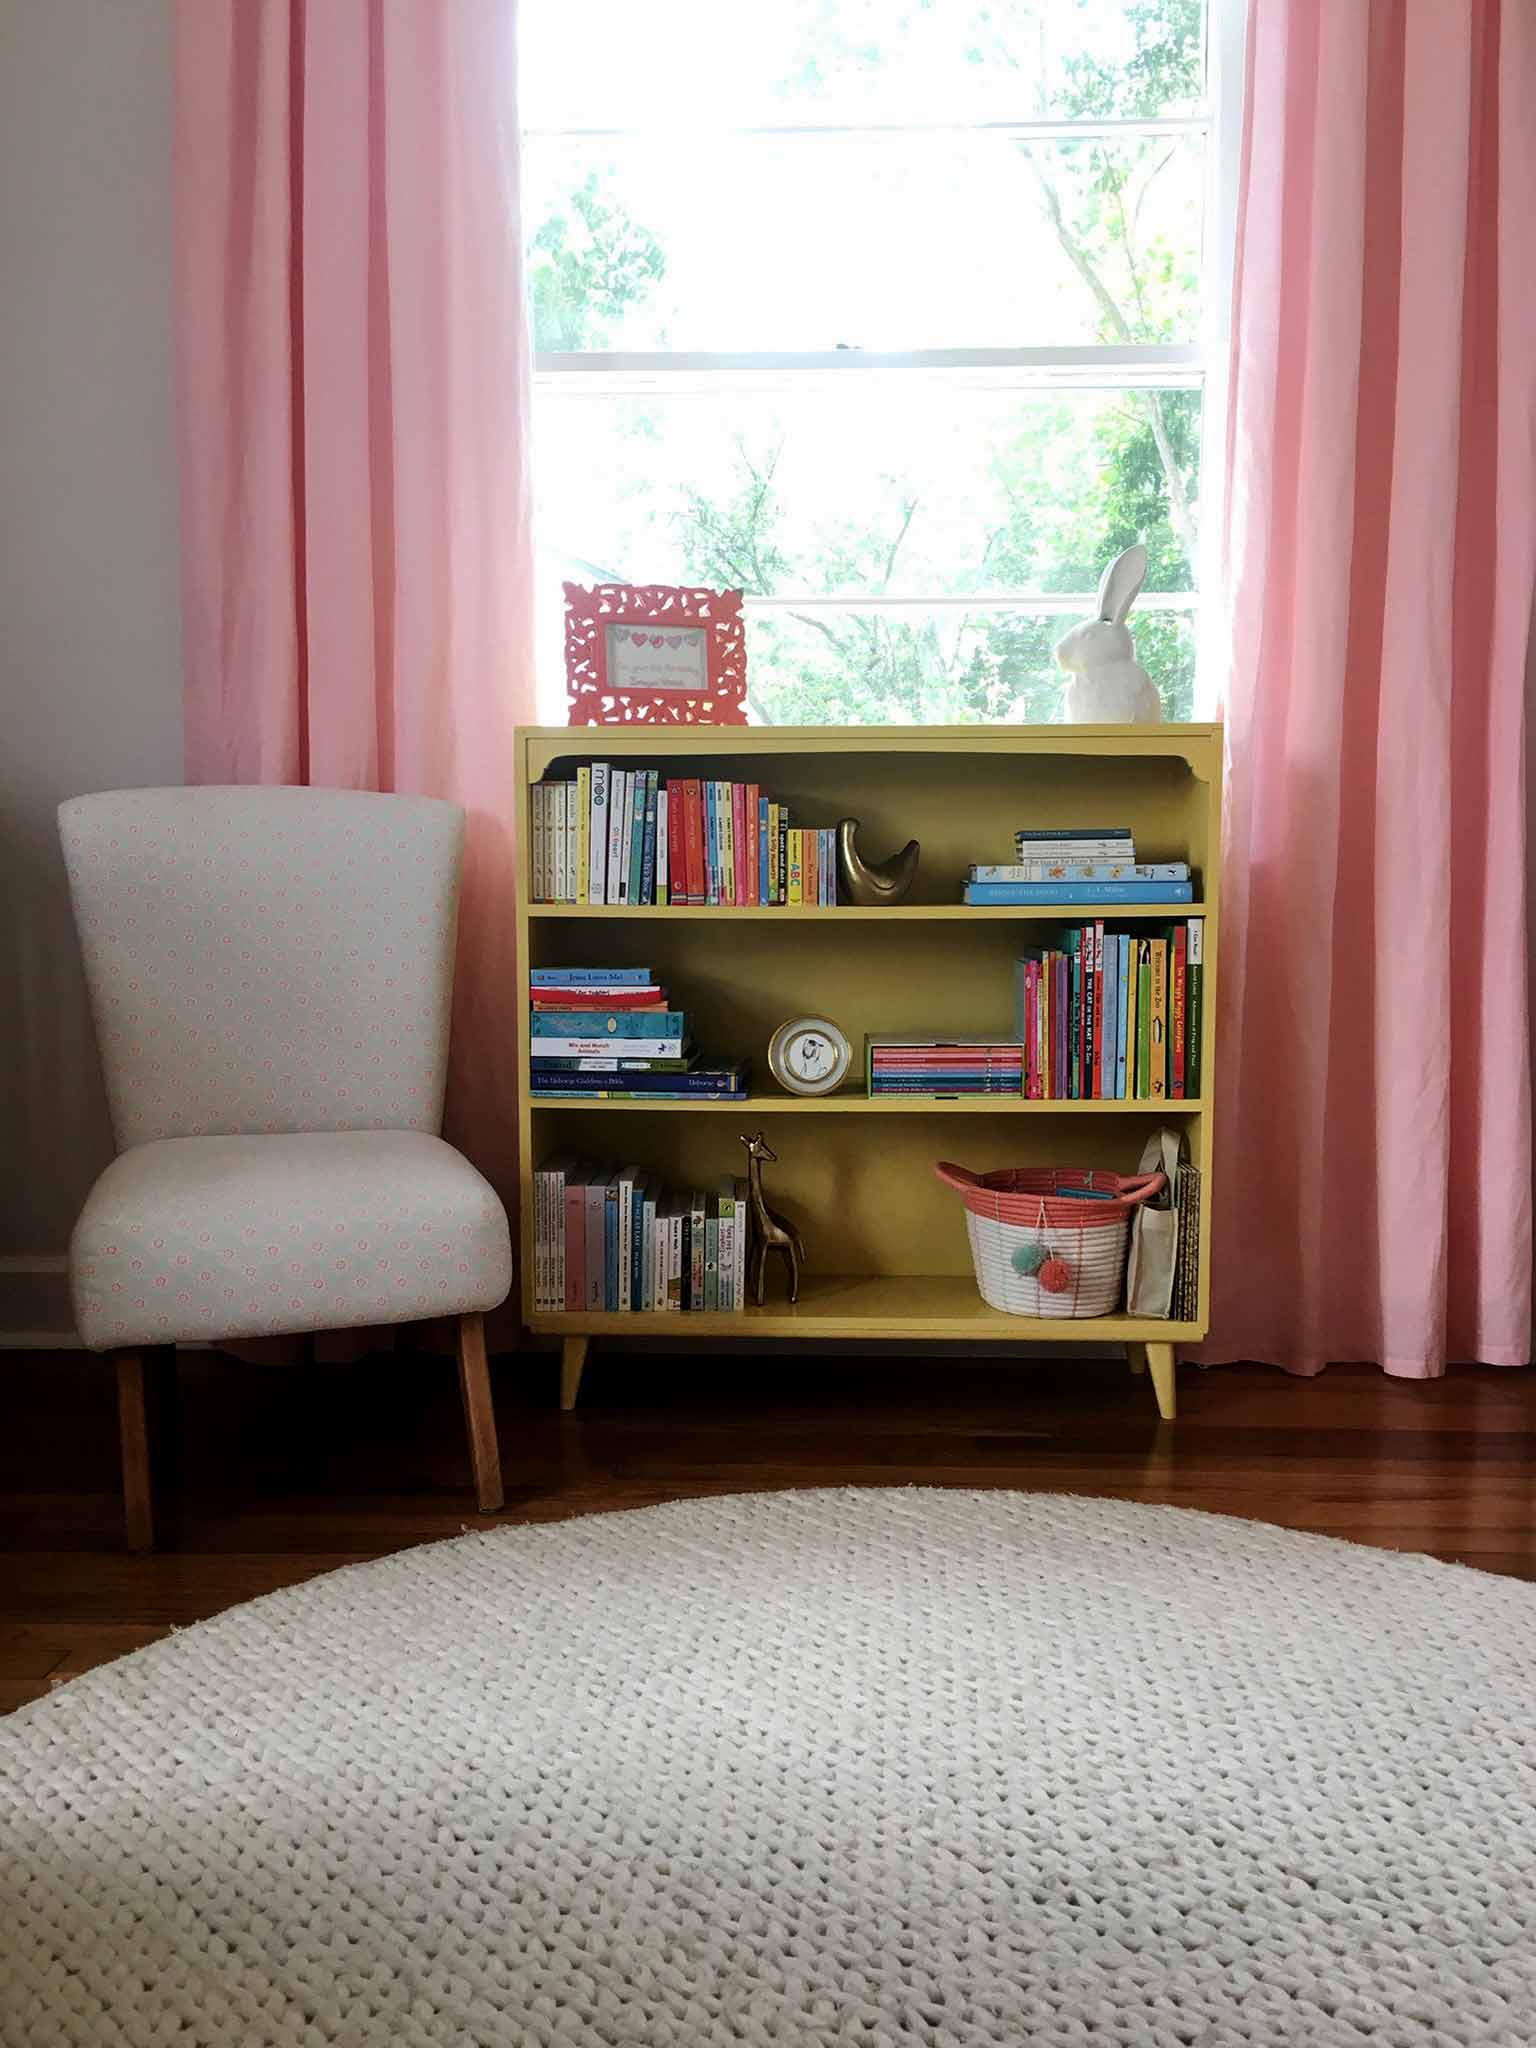 Vintage bookshelf - How to Declutter, Organize and Style Kids' Books - That Homebird Life Blog